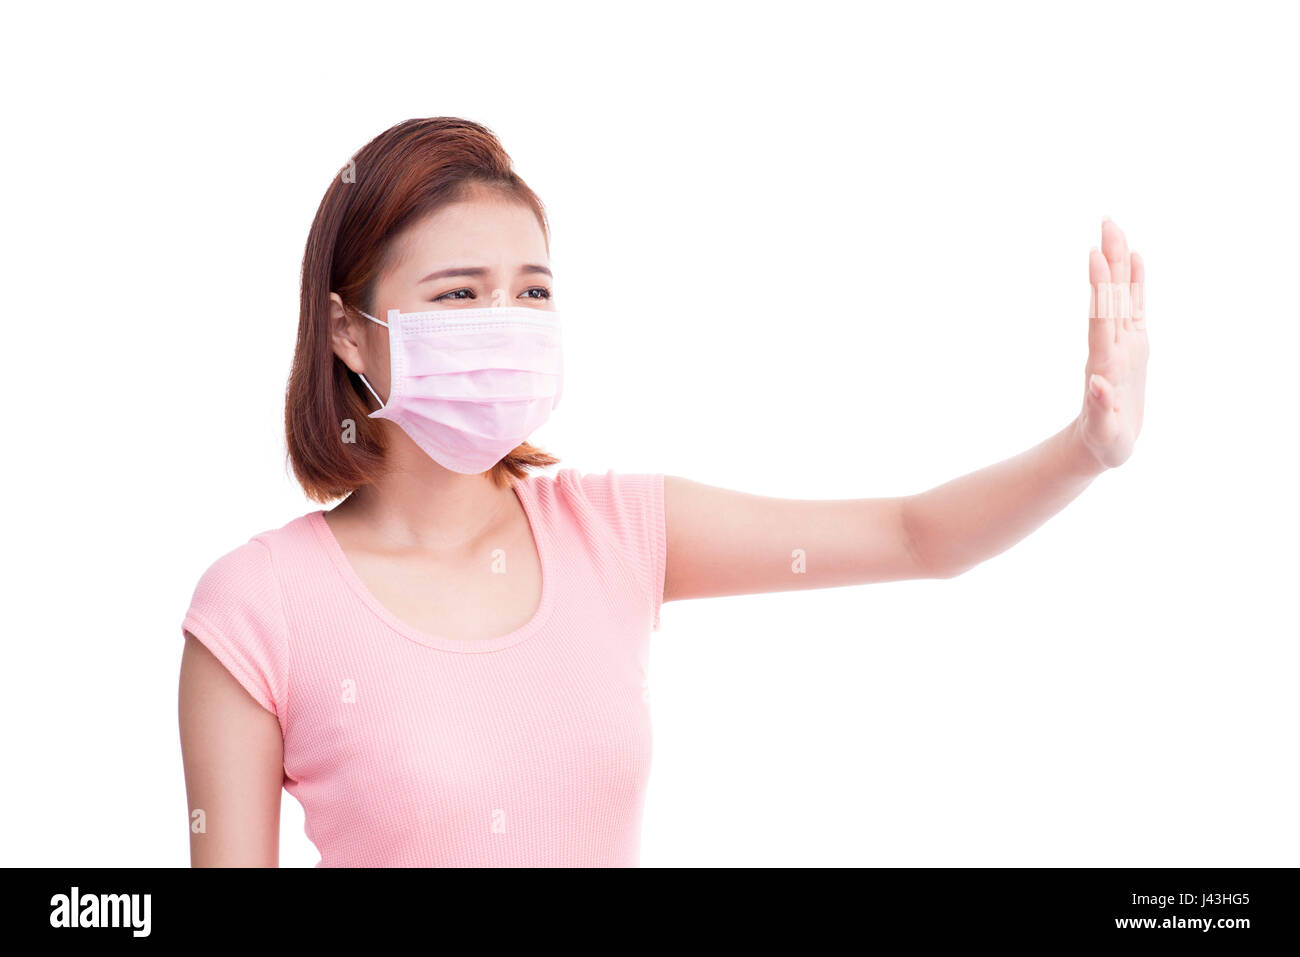 2019 year for girls- How to face wear mask when sick